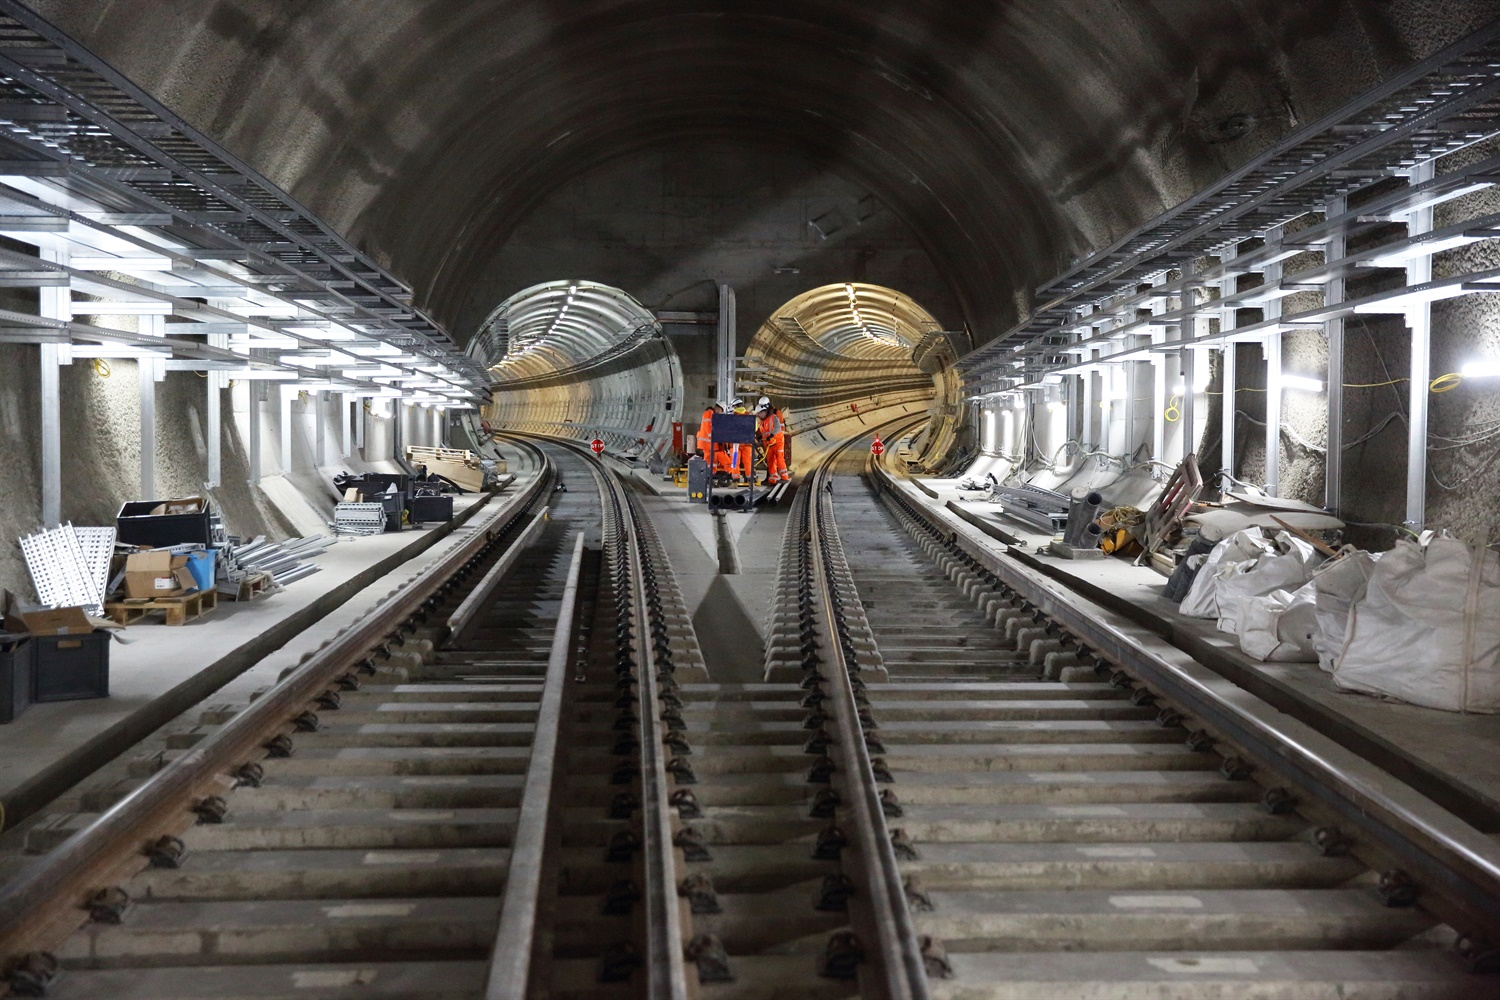 Crossrail unveils new pictures showing progress with tunnel fit-out work